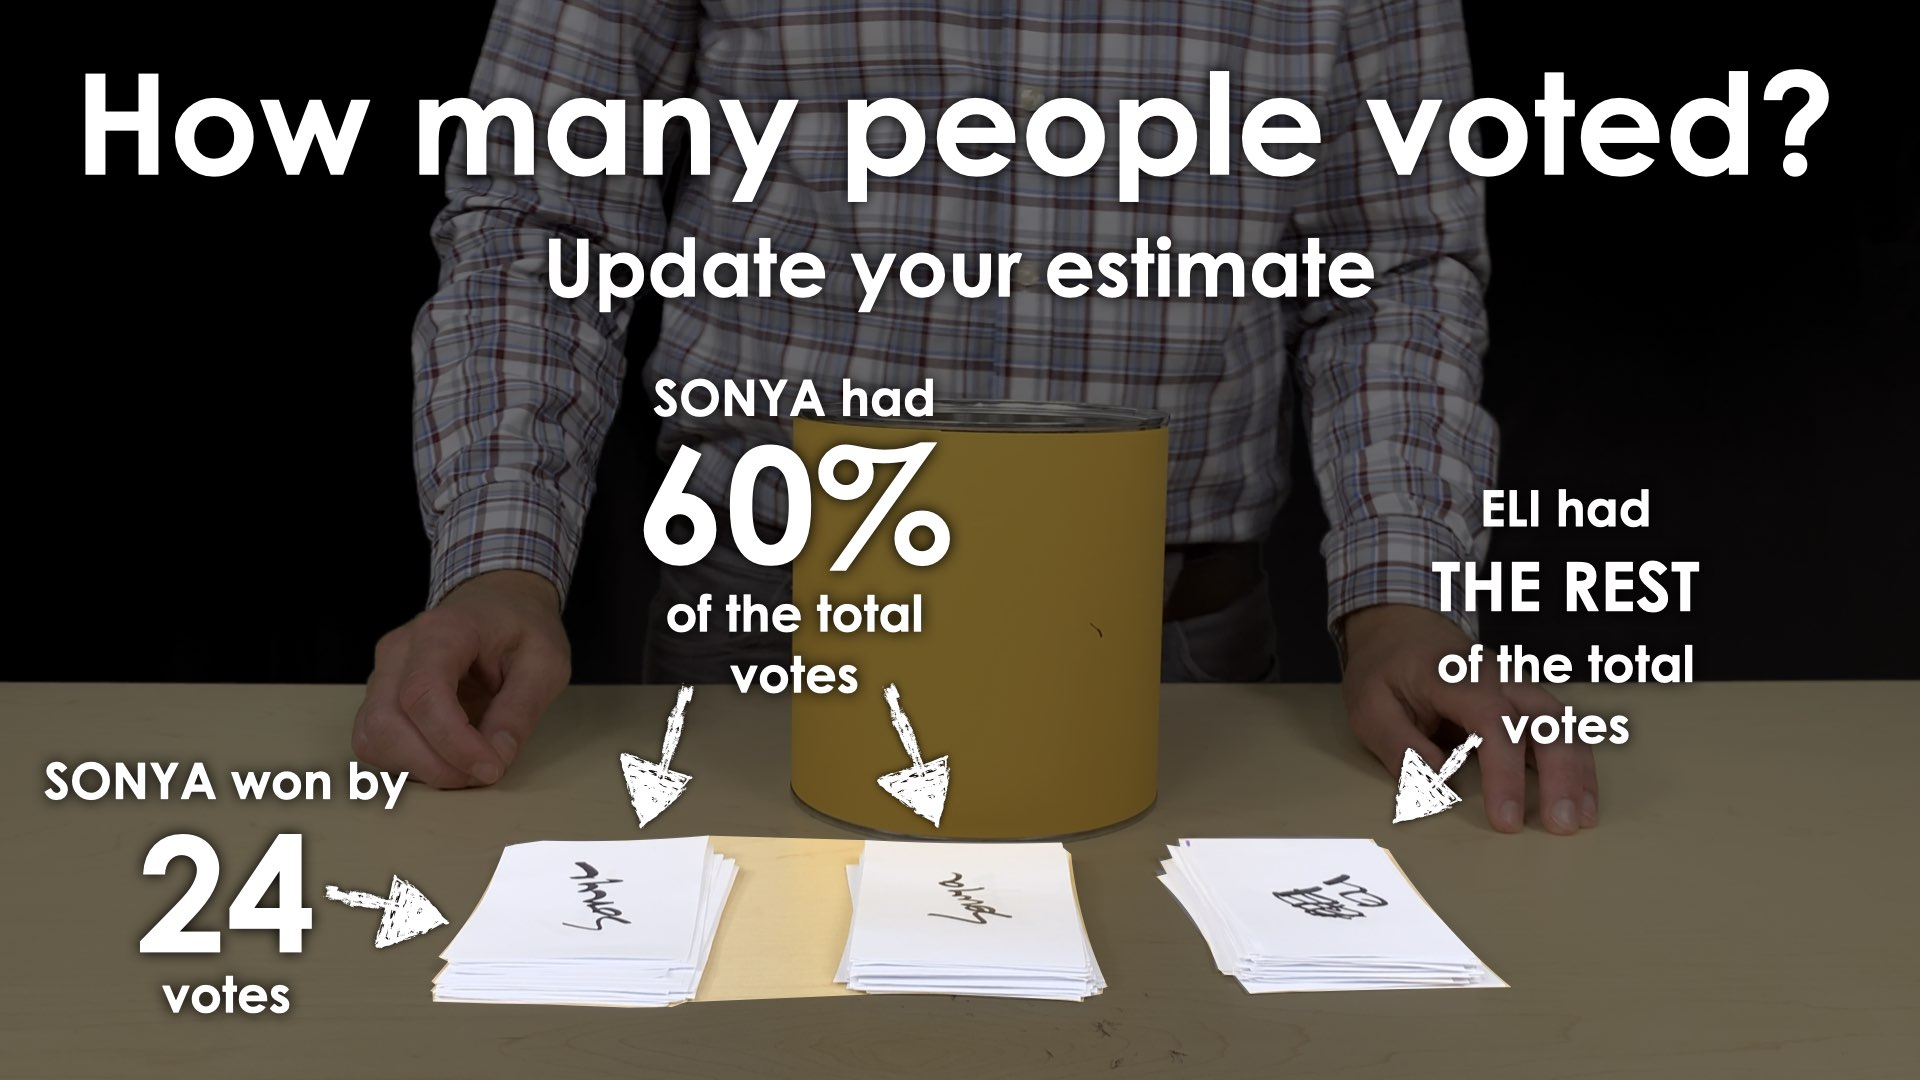 MMM Voting Booth Lesson.029 SENSE MAKING PRODUCTIVE STRUGGLE Sonya had 24 more votes